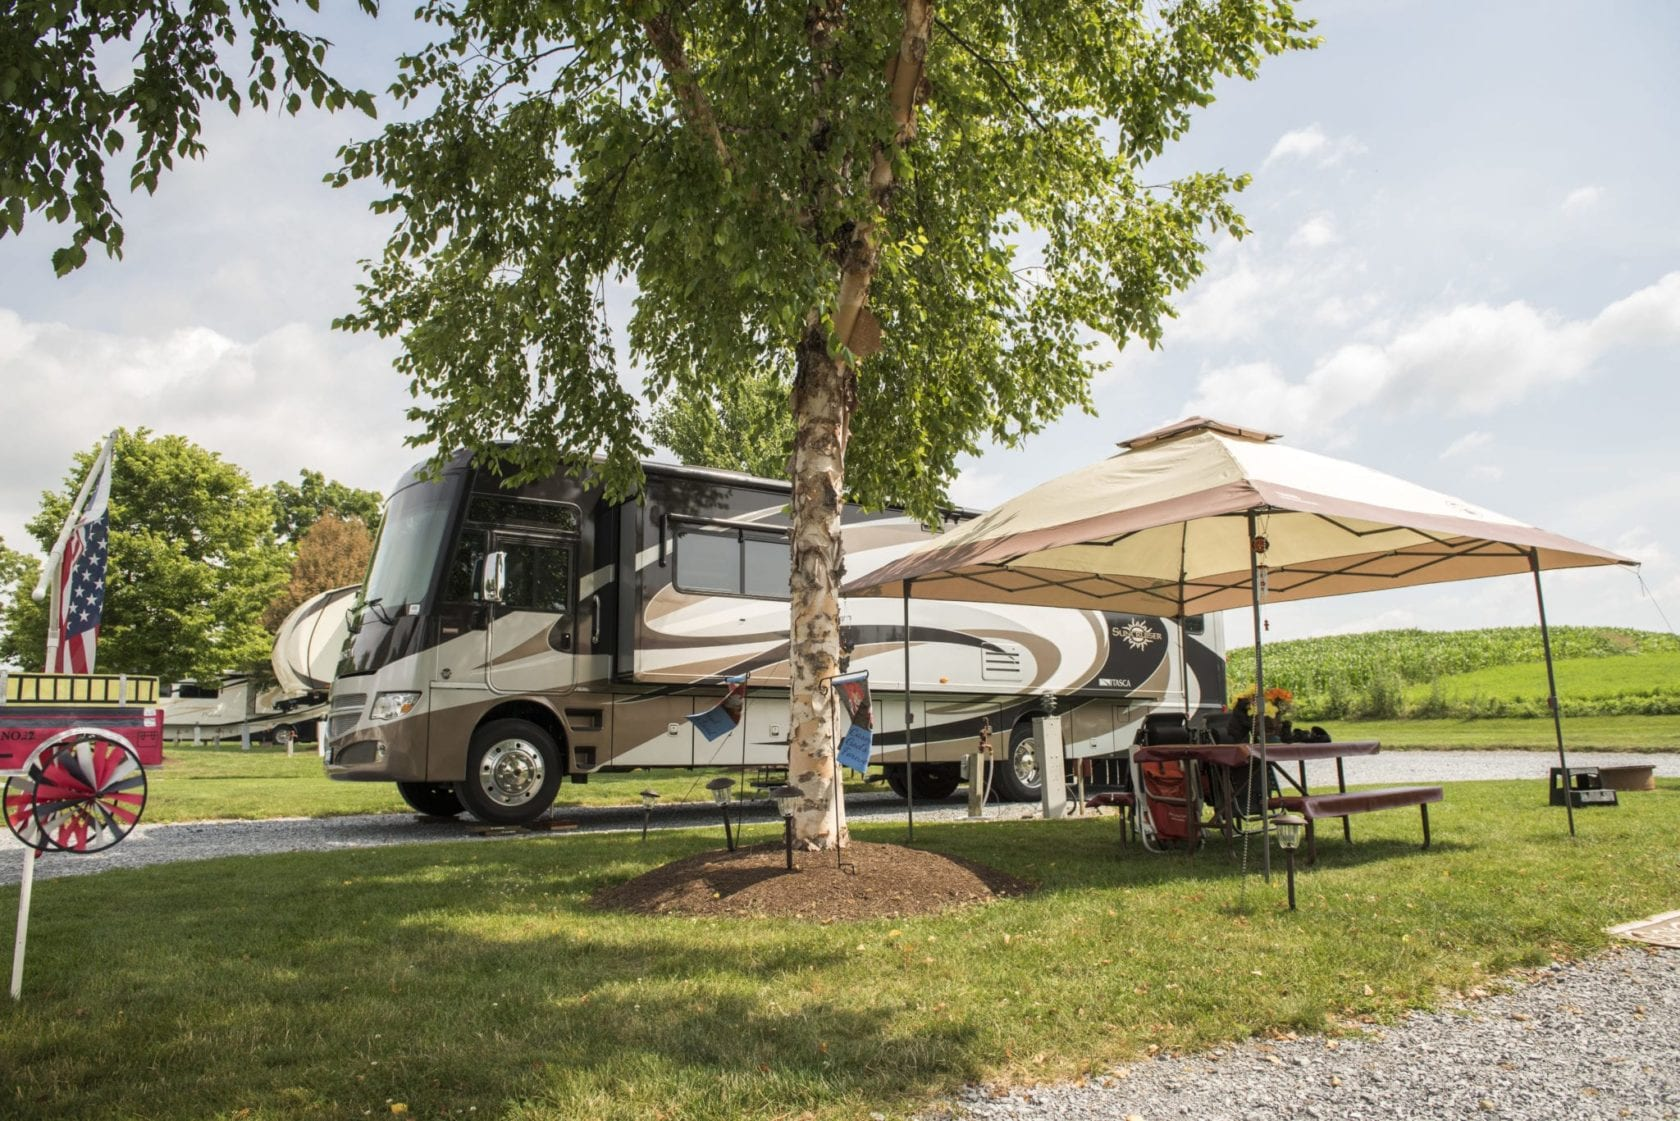 Country Acres Campground - RV Park, Cabins, Tent Camping